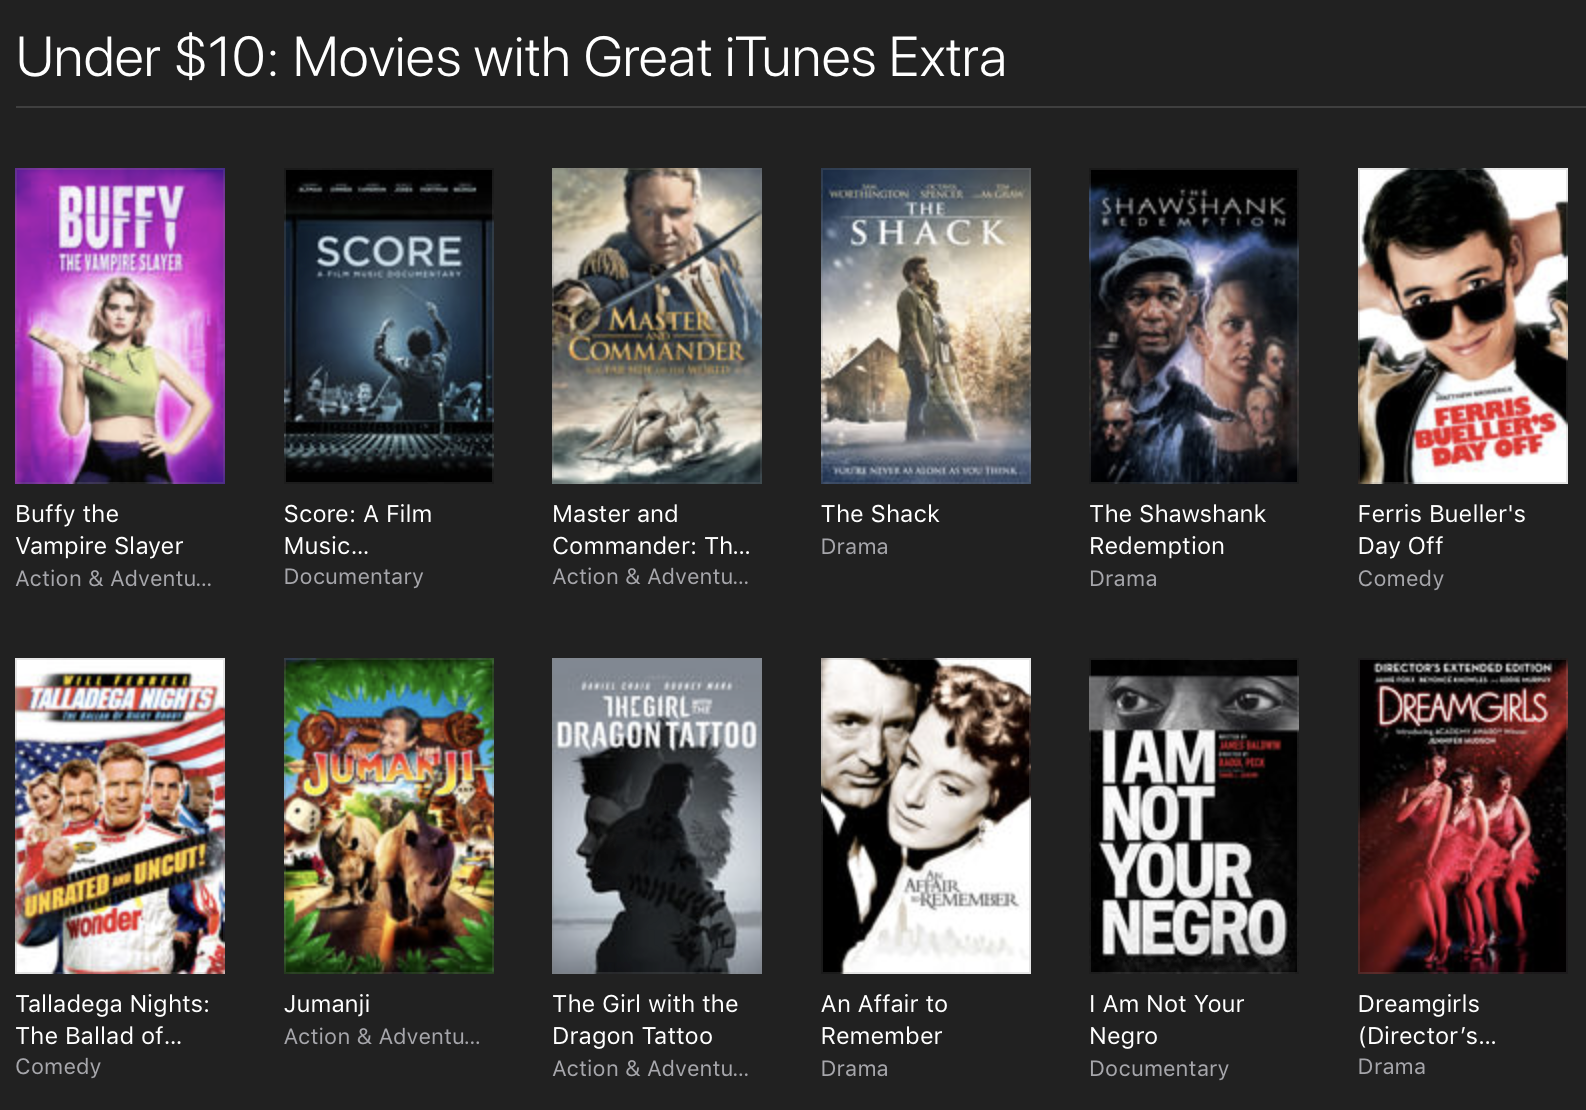 How to use a the Apple iTunes Store coupon Buy discounted gift cards to save money on movies, television shows, music and more at the Apple iTunes online store. iTunes does not normally offer coupons, but some stores will offer discounts for iTunes, such as $40 for a $50 gift card.